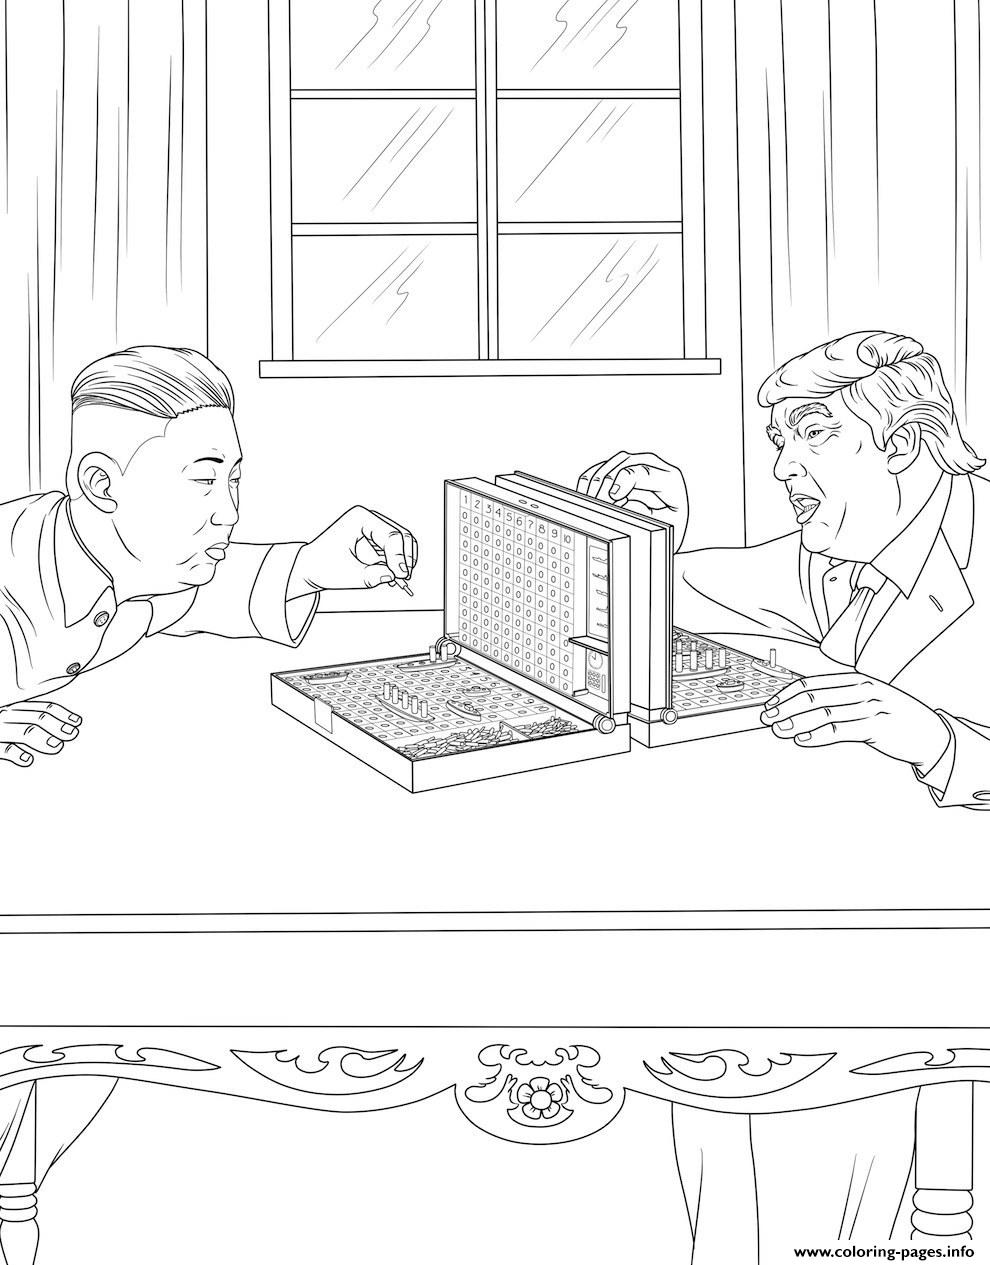 Donald Trump With Corea President coloring pages